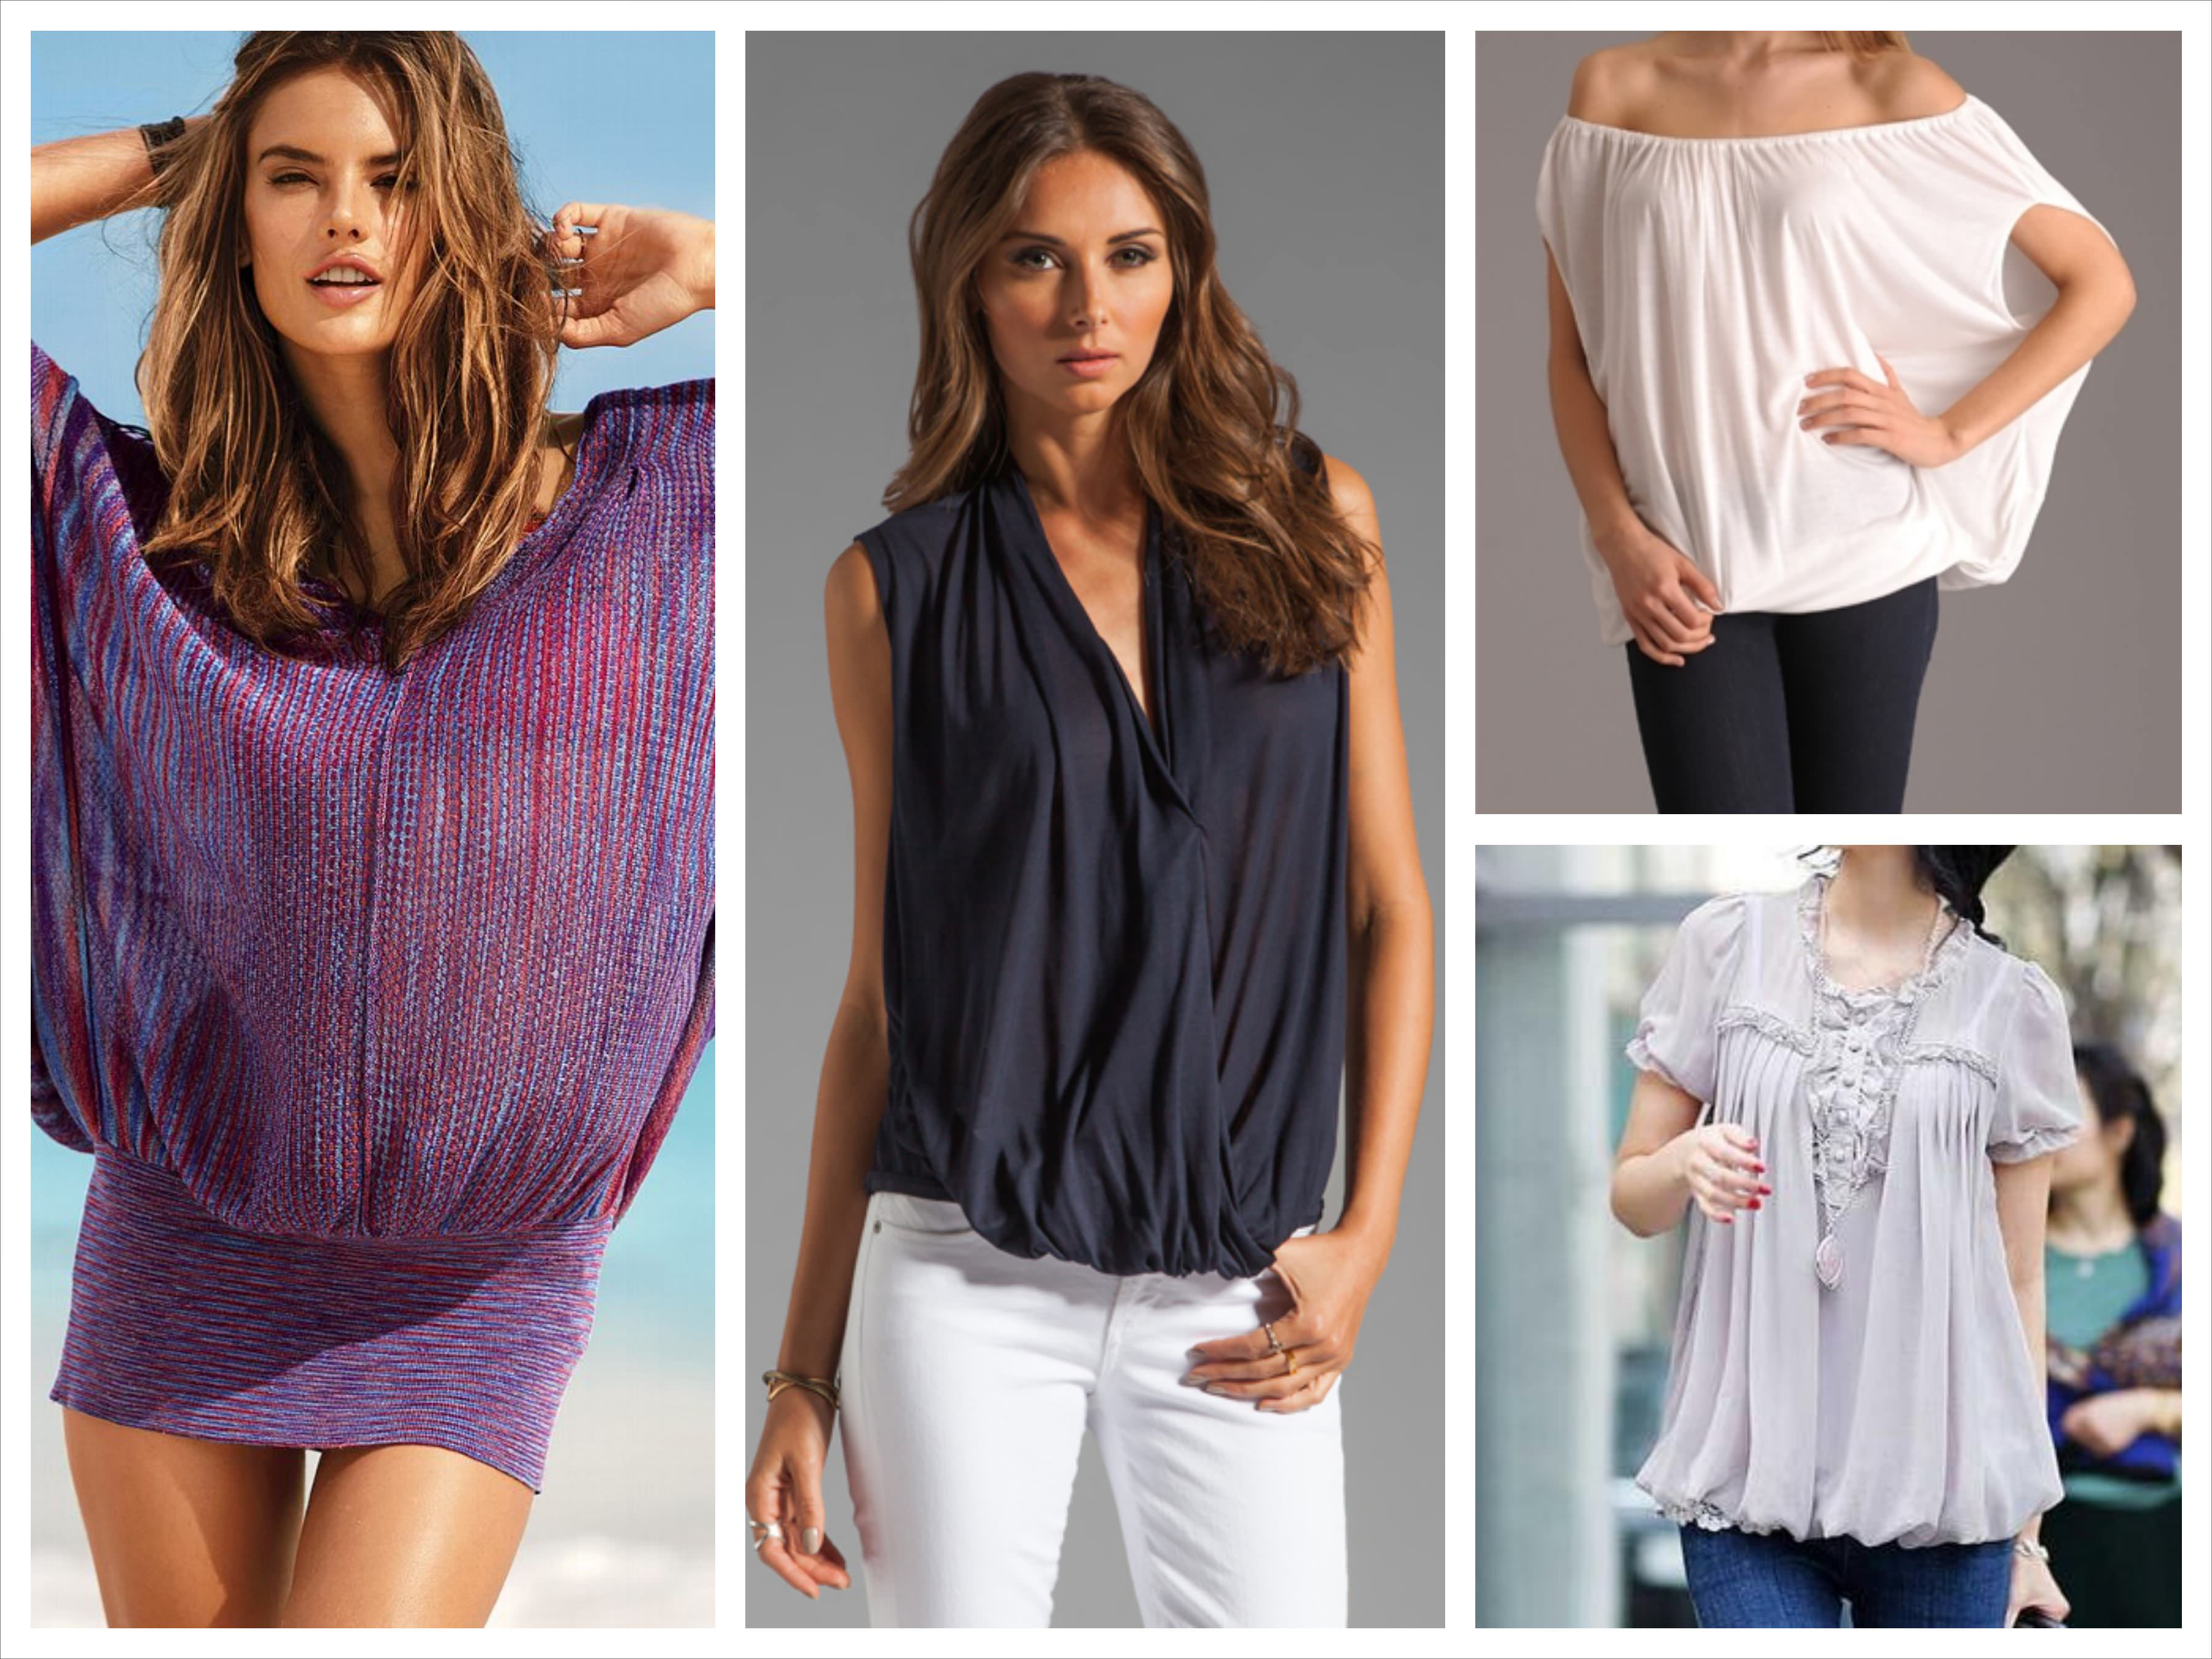 12 clever ways to hide tummy flab topwear touch18 for Dress shirts for big bellies